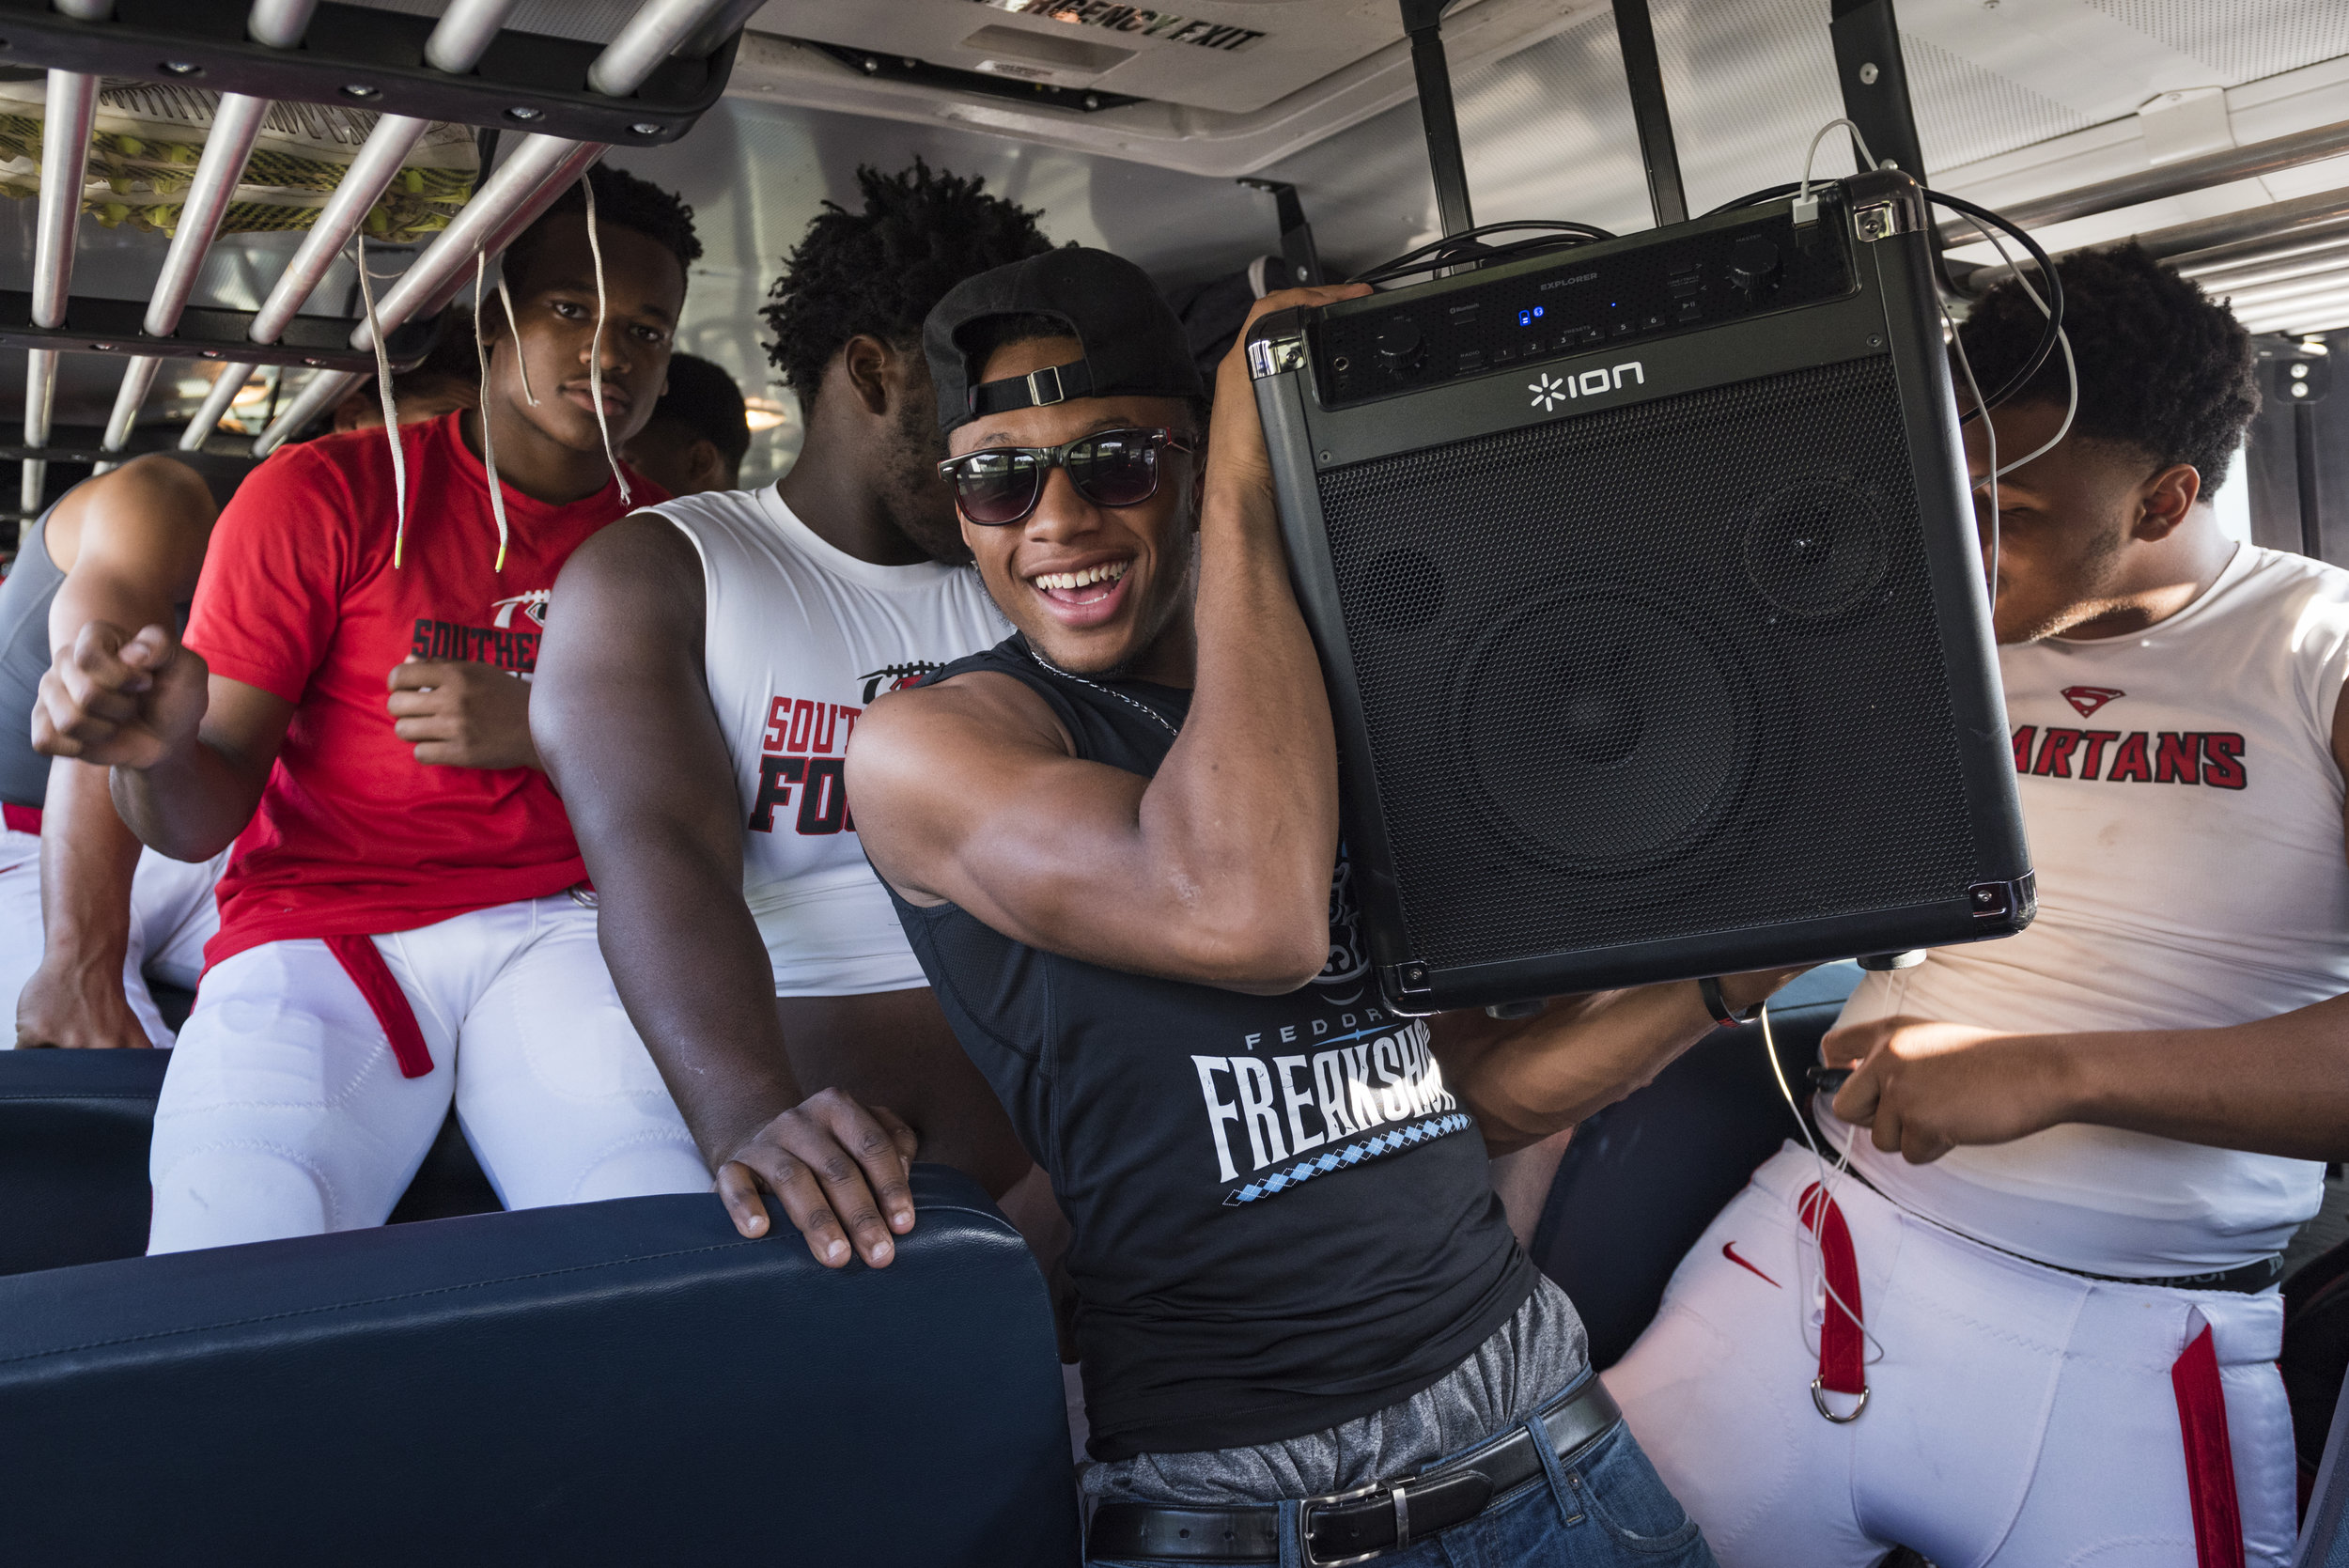 Southern Durham junior wide receiver Devin Smith carries the team speaker inside of the bus. Smith, one of the team's best players, was not playing due to injury but that did not stop him from starting the party before the game.